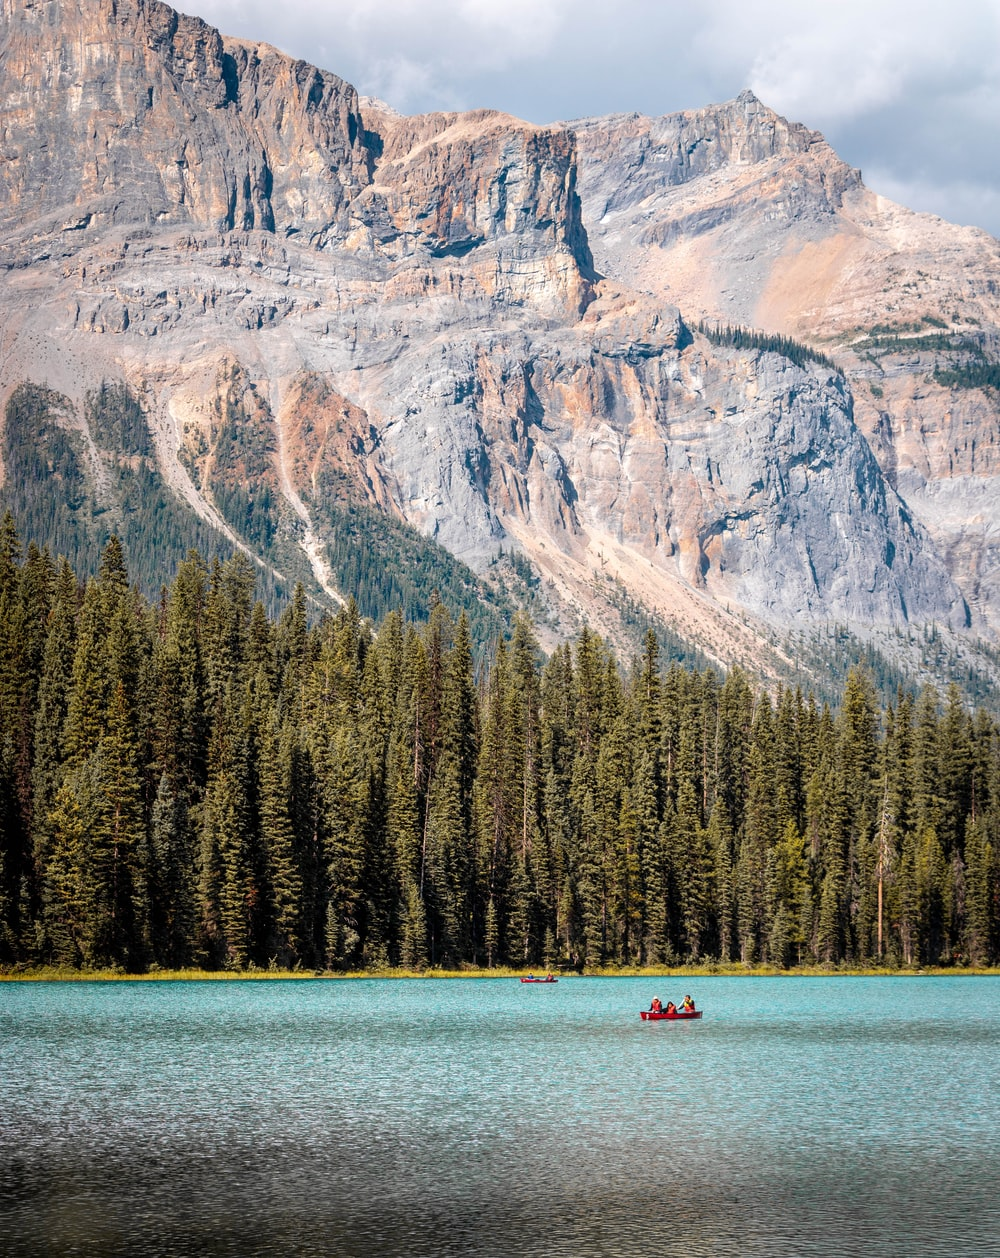 person riding on boat on lake near mountain during daytime